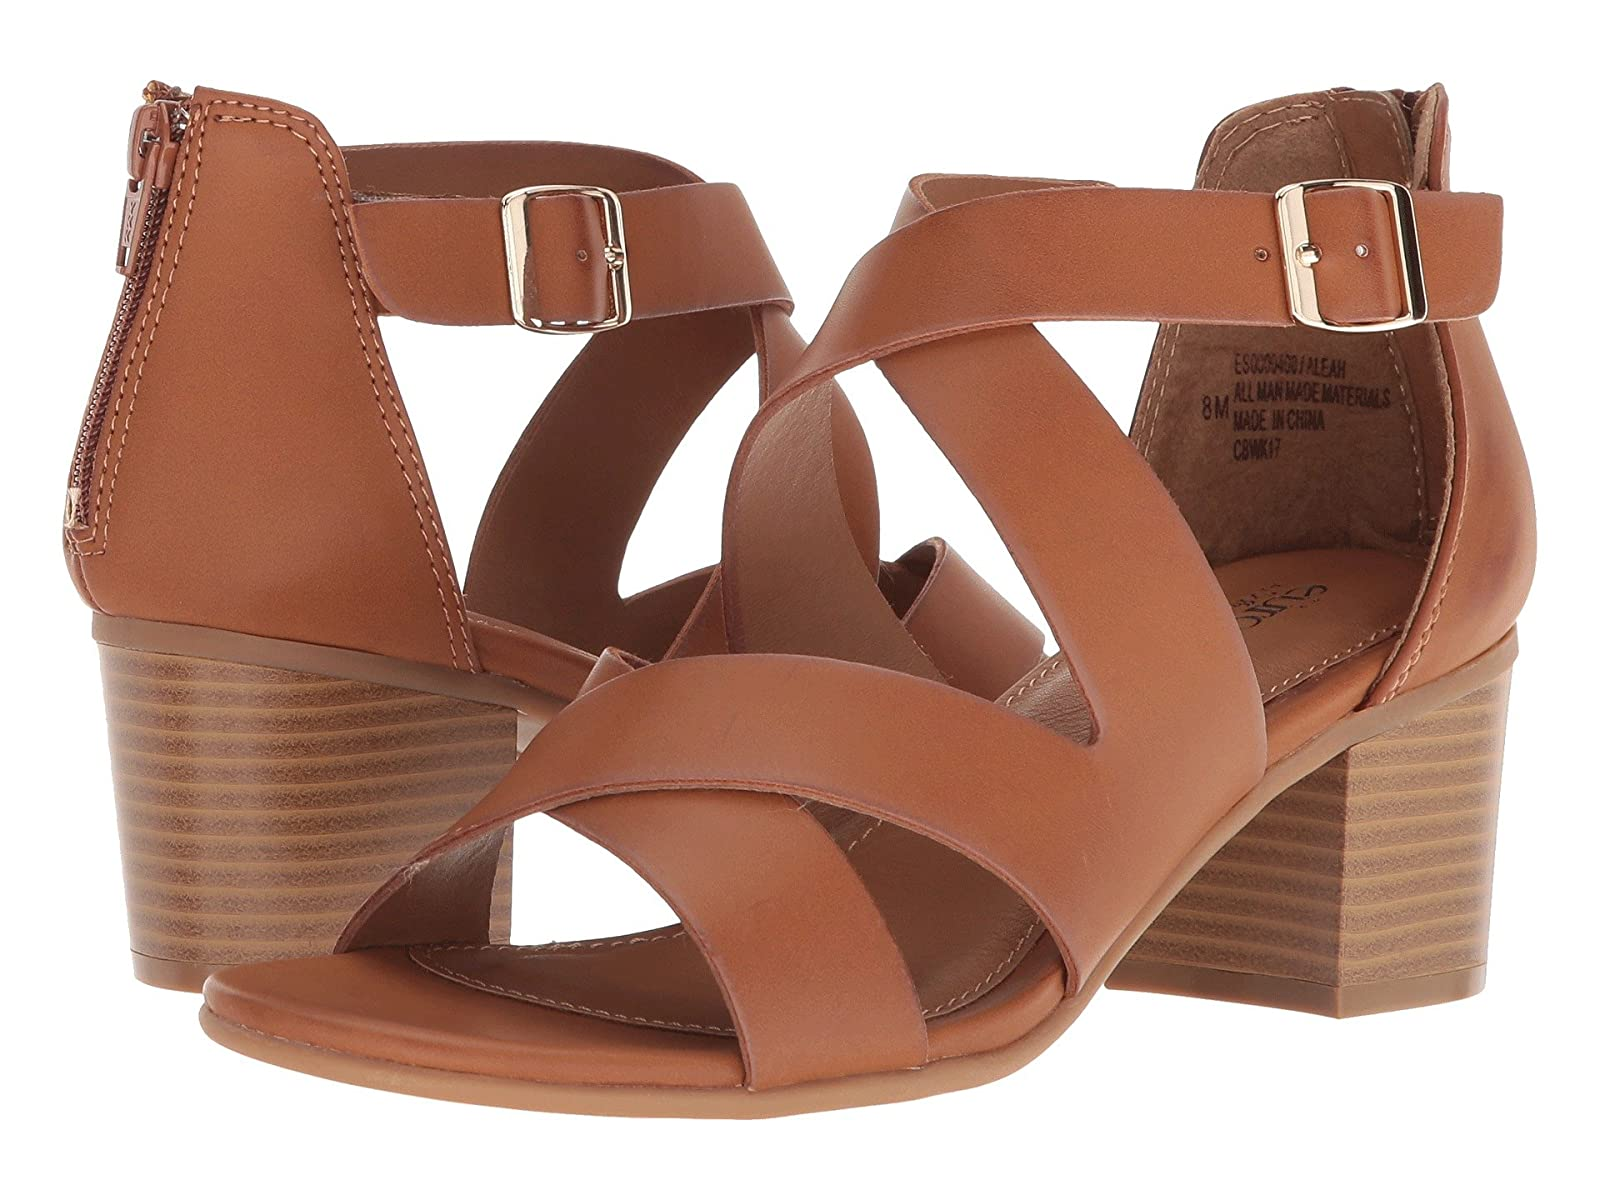 EuroSoft AleahCheap and distinctive eye-catching shoes